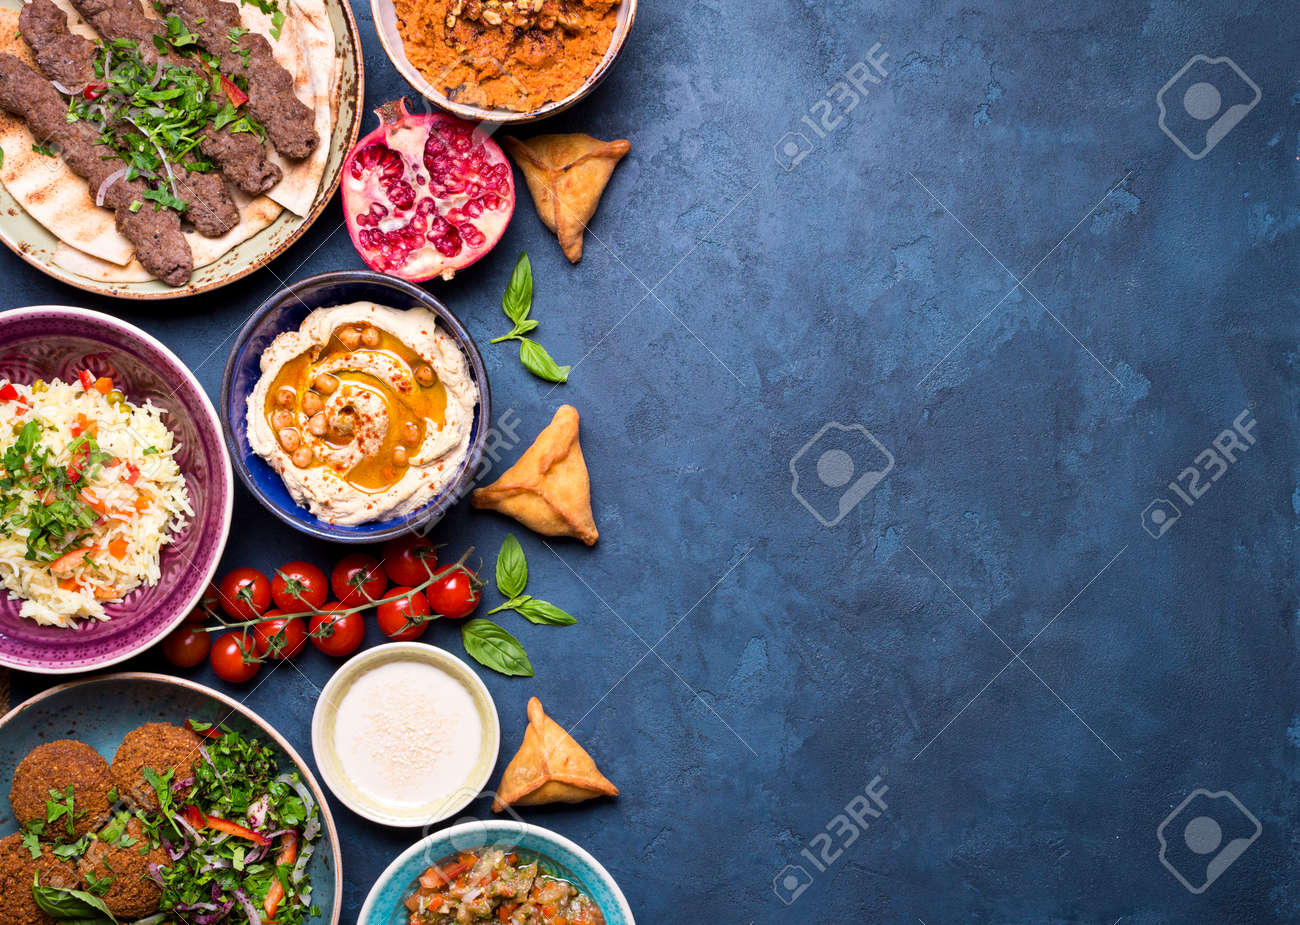 Middle eastern or arabic dishes and assorted meze on concrete rustic background. Meat kebab, falafel, baba ghanoush, hummus, sambusak, rice, tahini, kibbeh, pita. Halal food. Space for text. Top view - 71417050